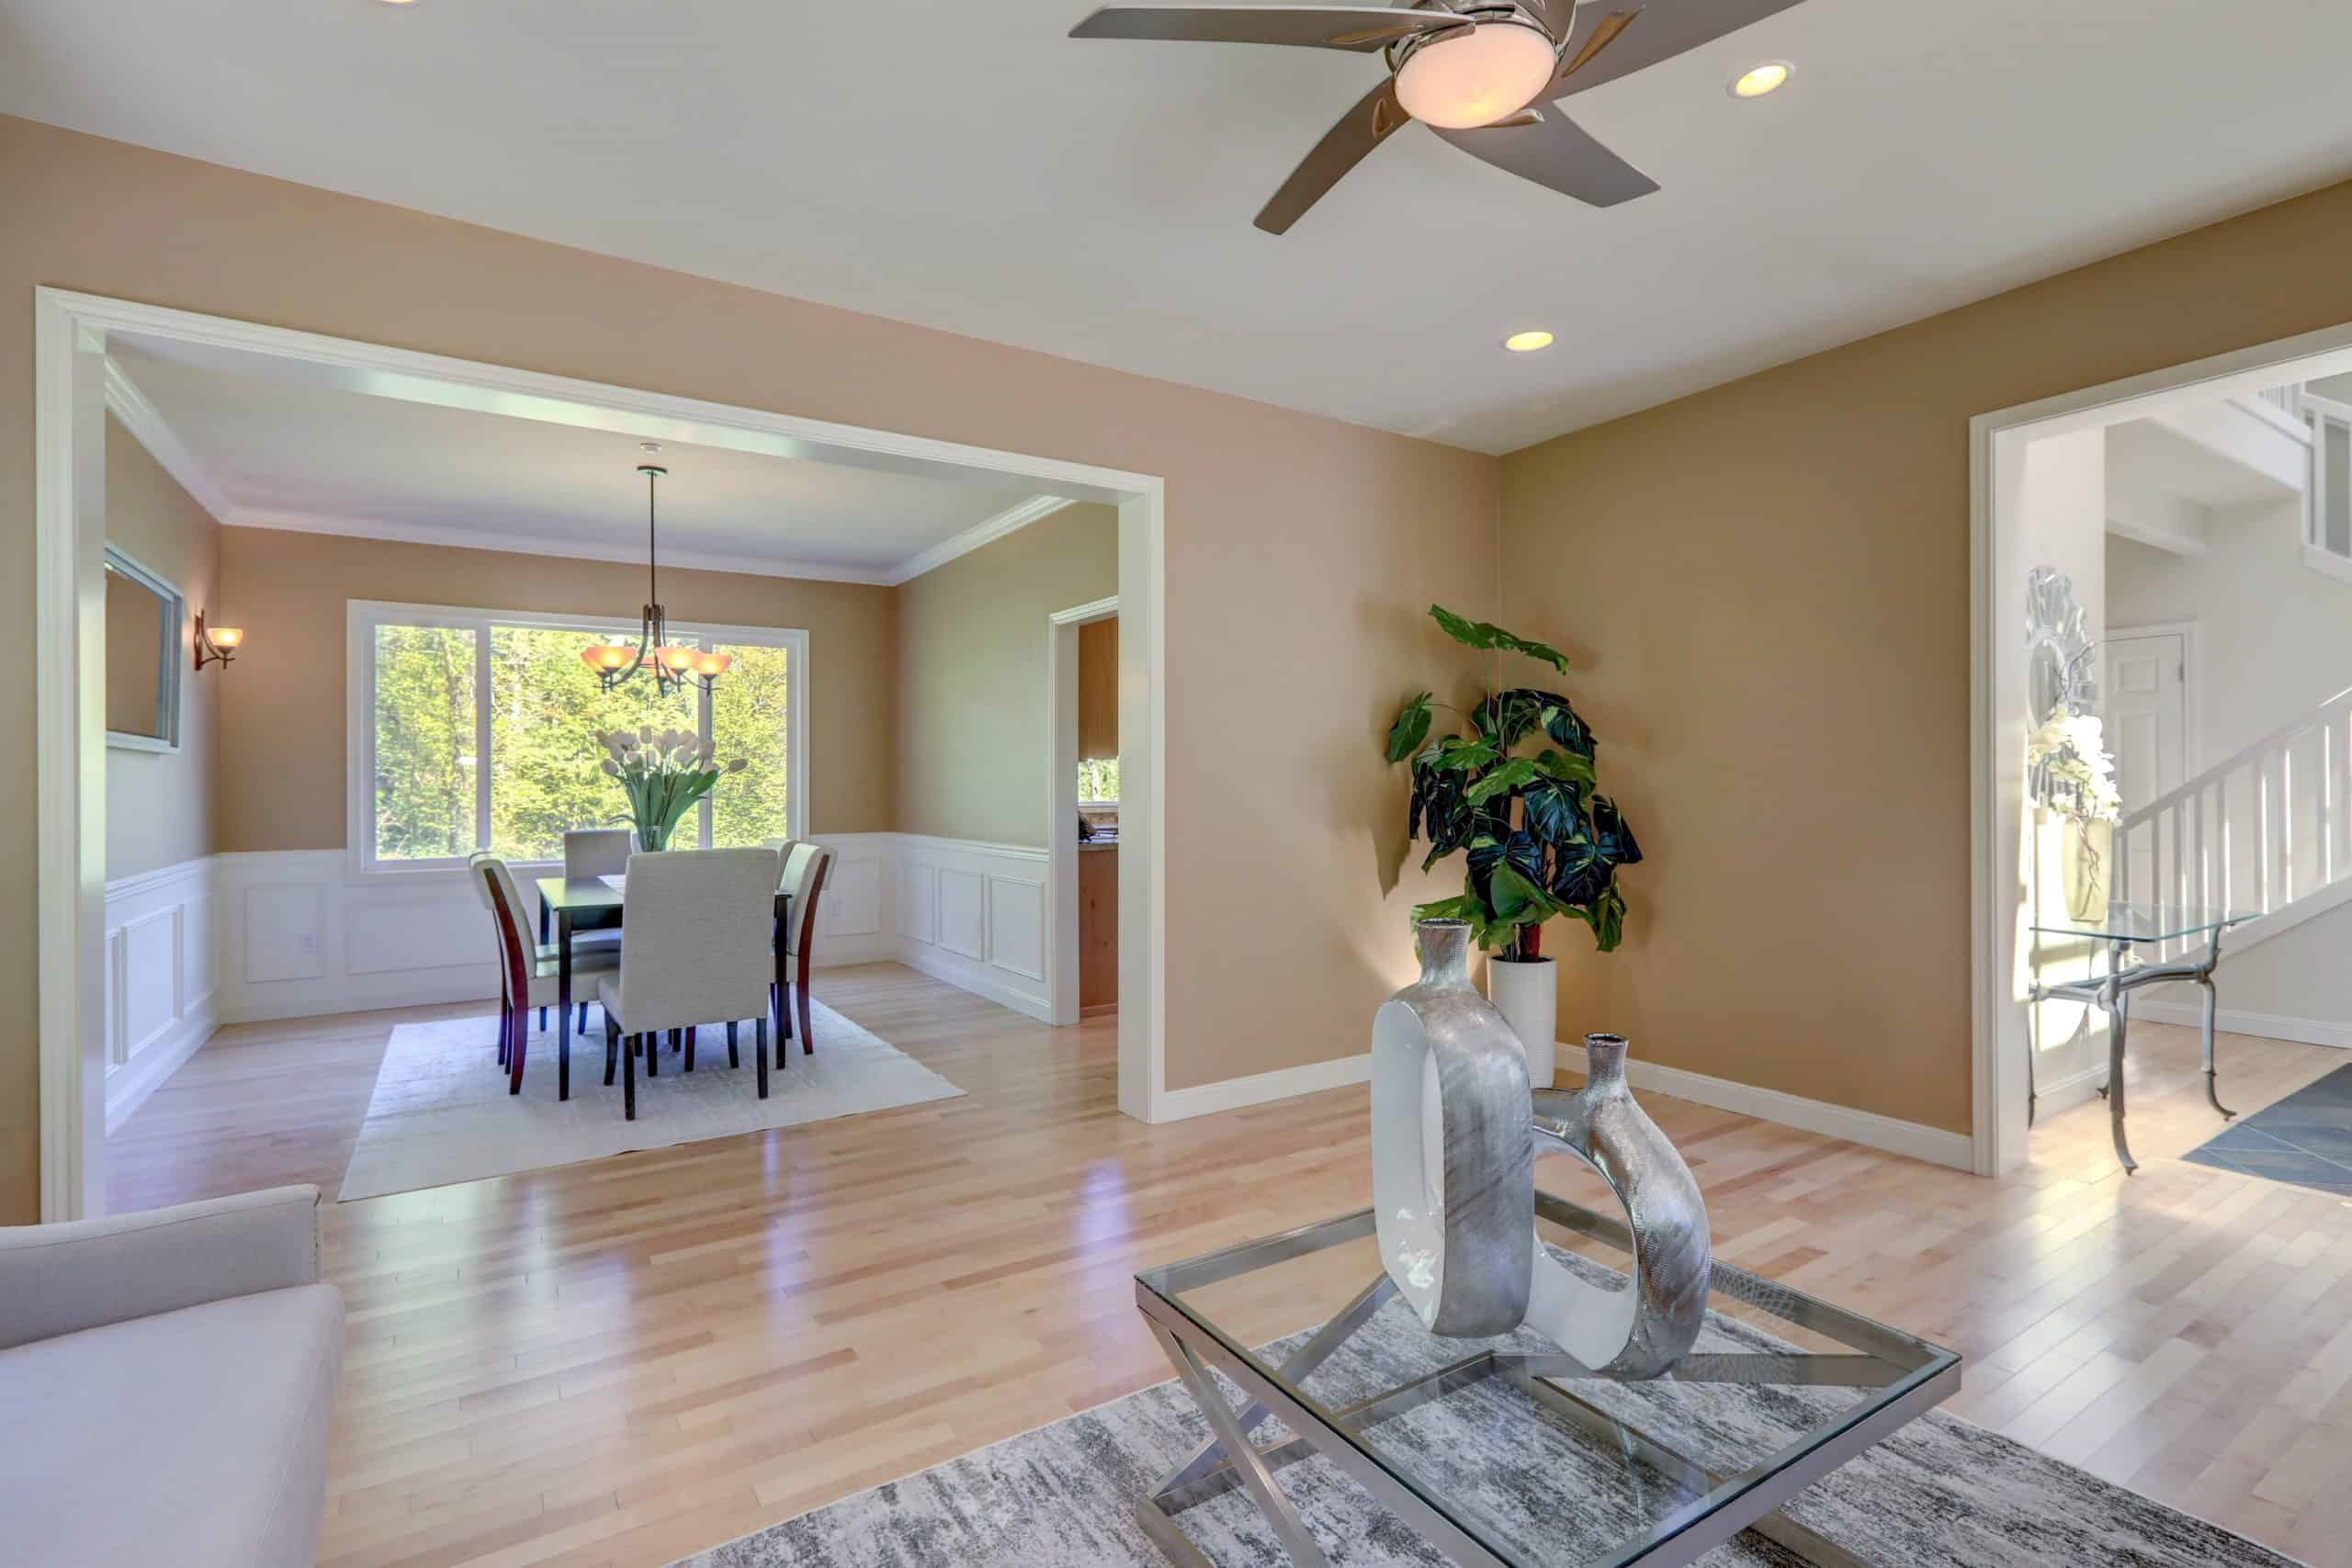 Home renovations that add value - nicely painted dining room and foyer